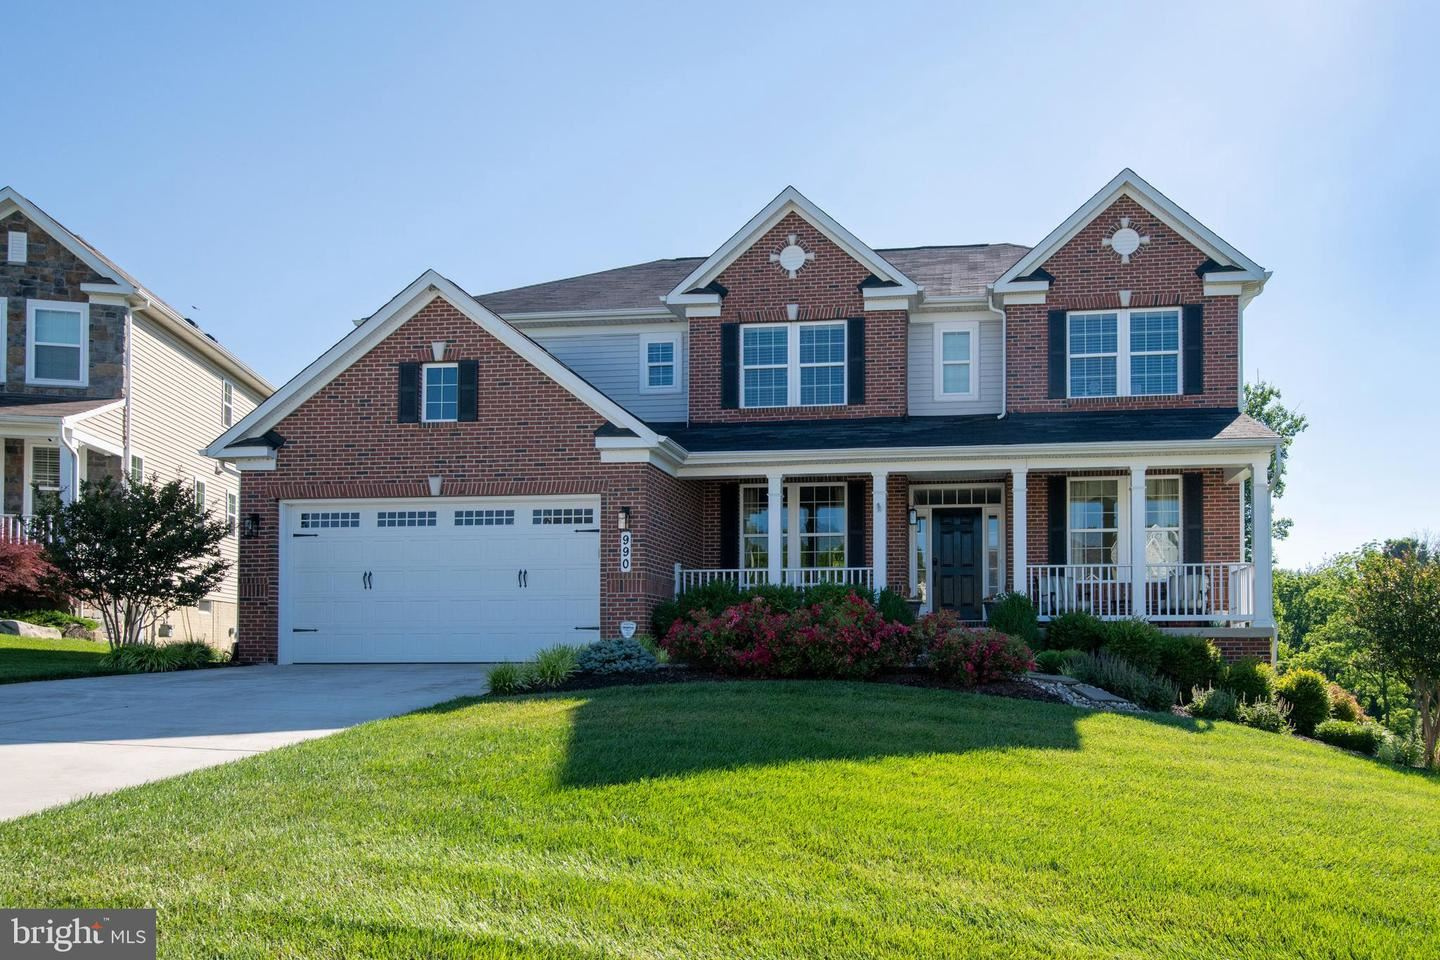 990 SADDLE VIEW WAY, Forest Hill, MD 21050 - MLS#: MDHR2004424